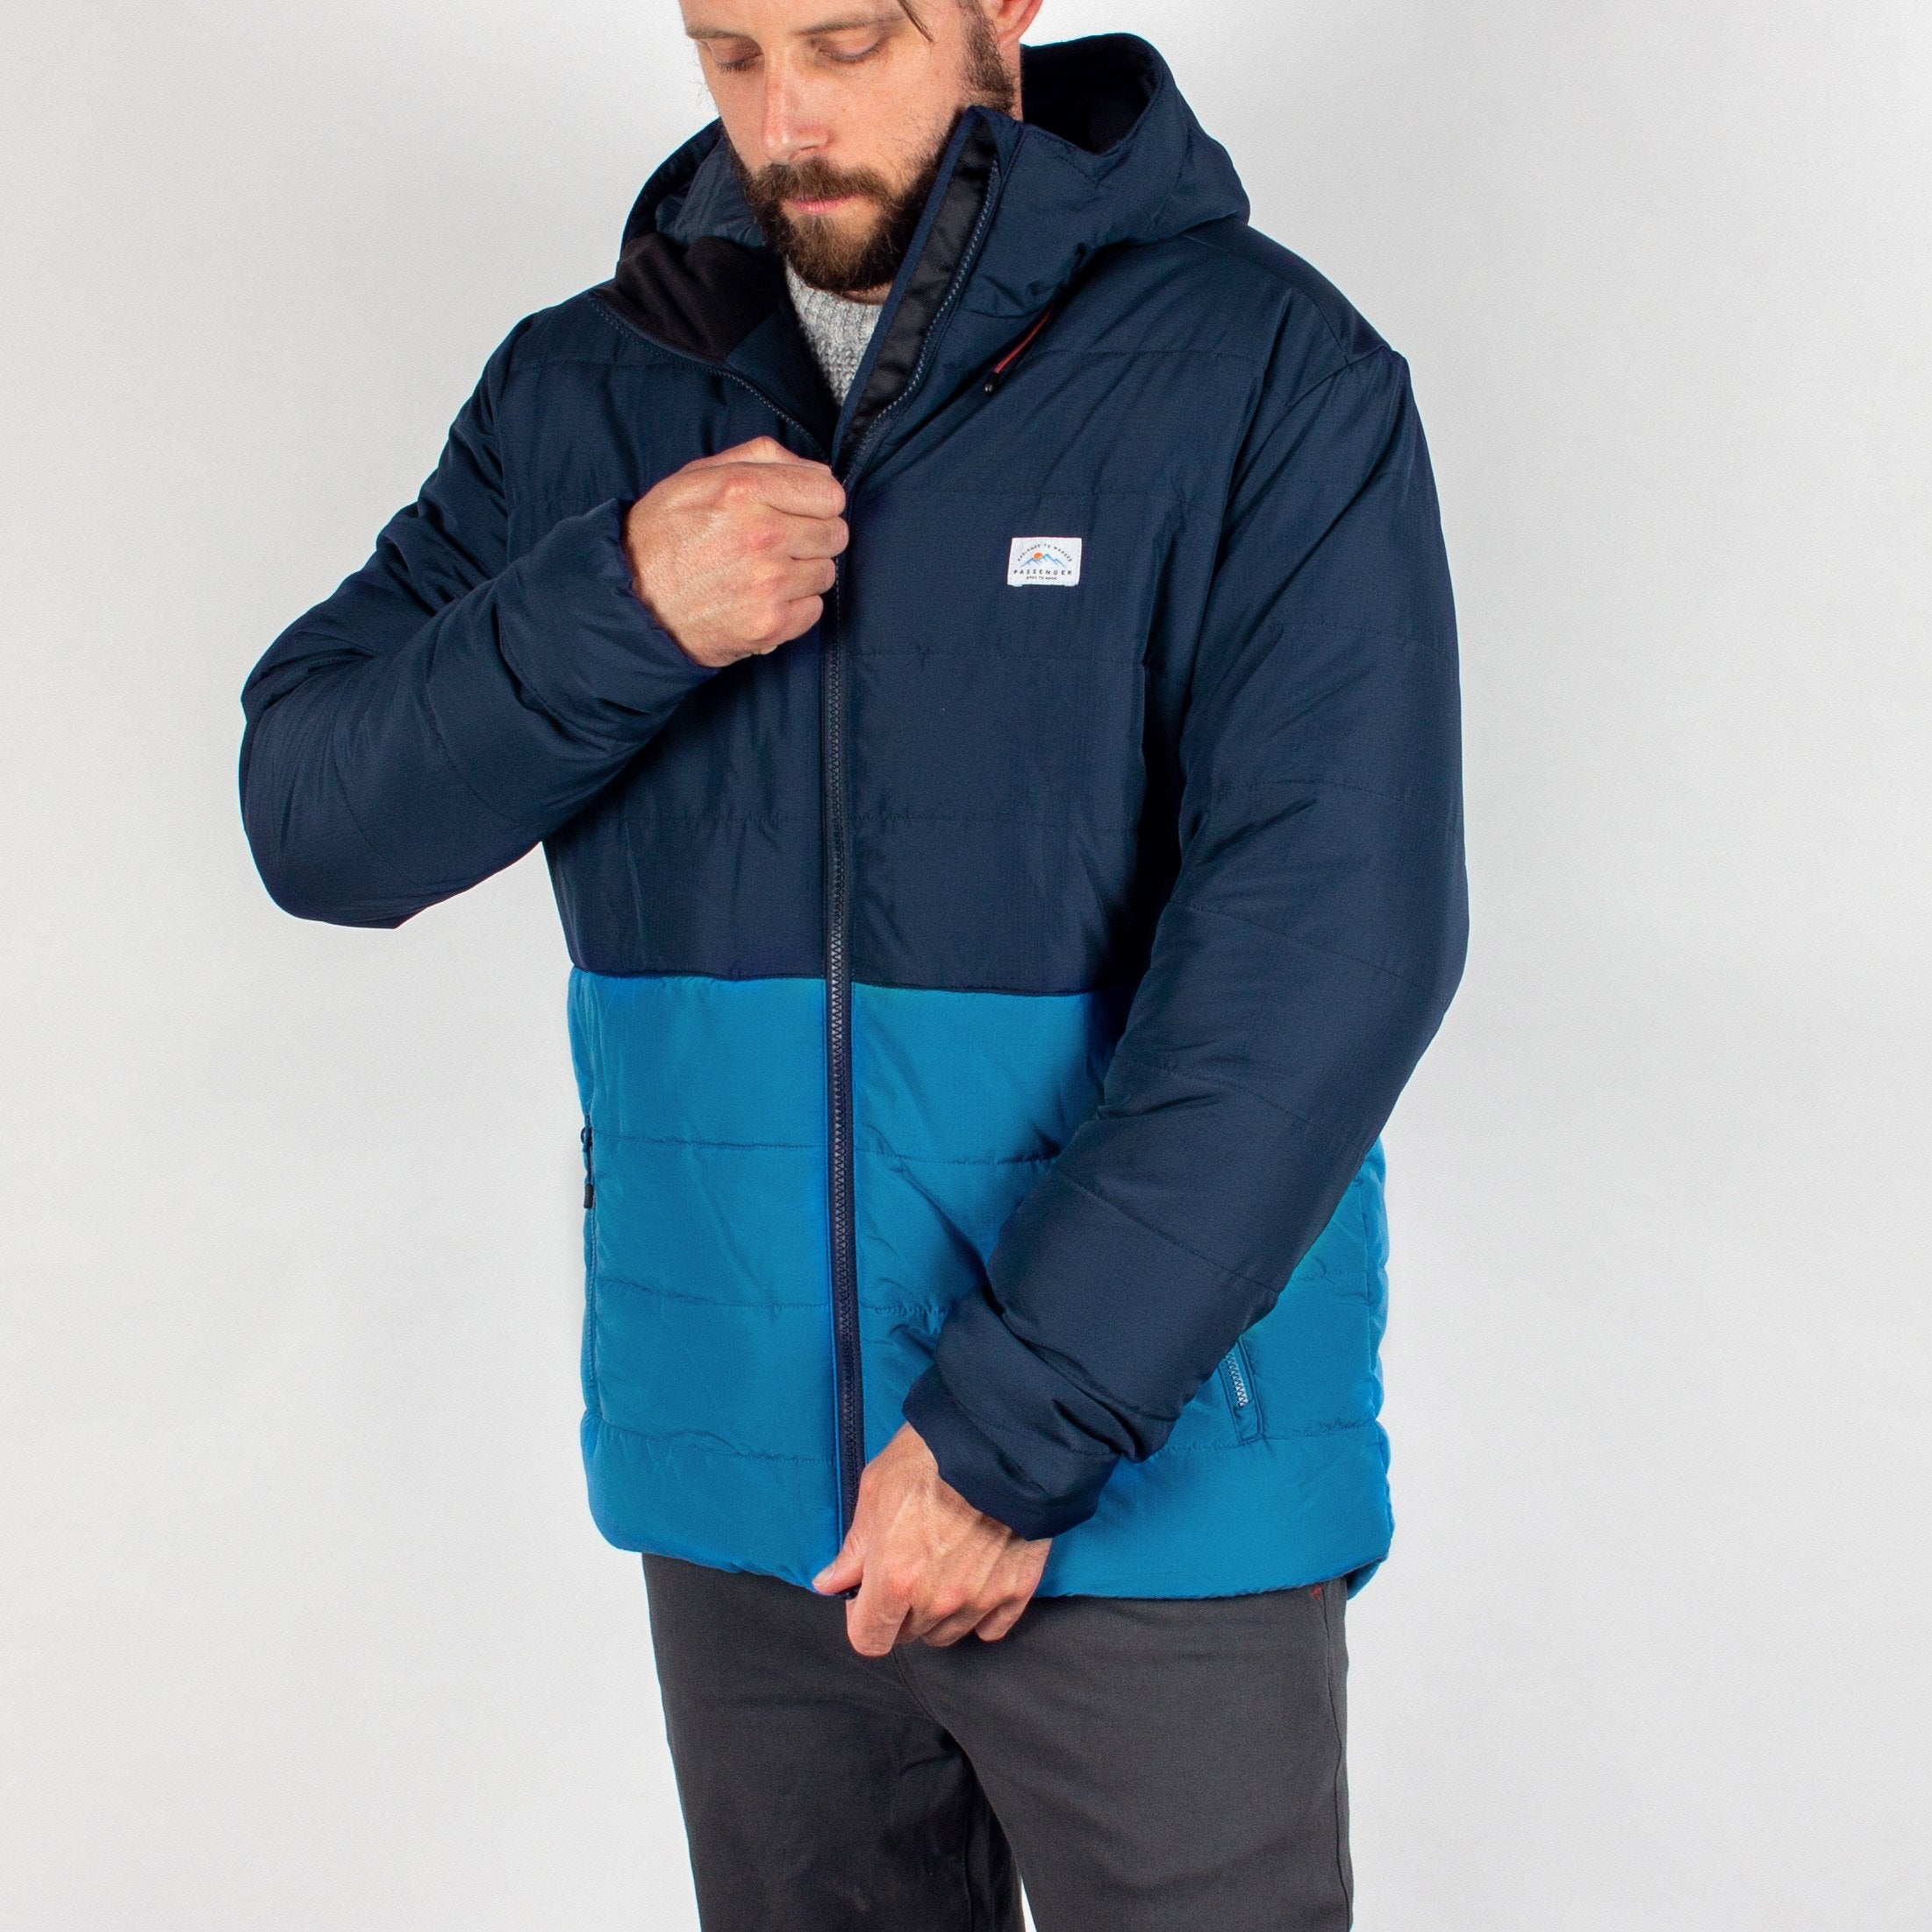 Patrol Insulated Jacket - Navy/Deep Water Blue image 3